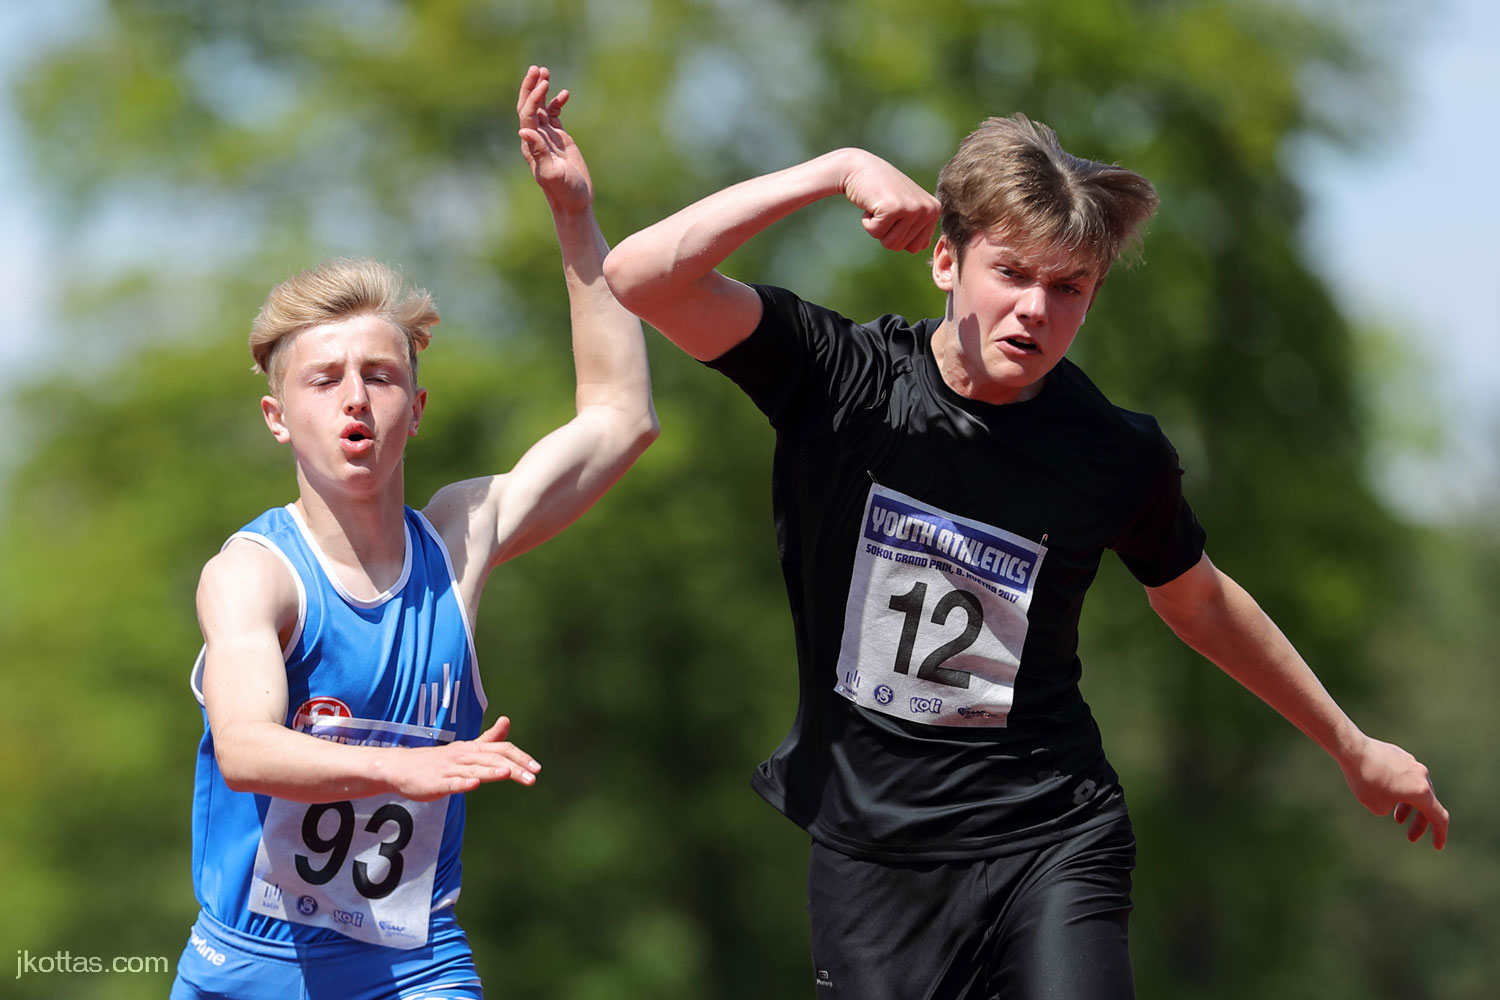 youth-athletics-kolin-20